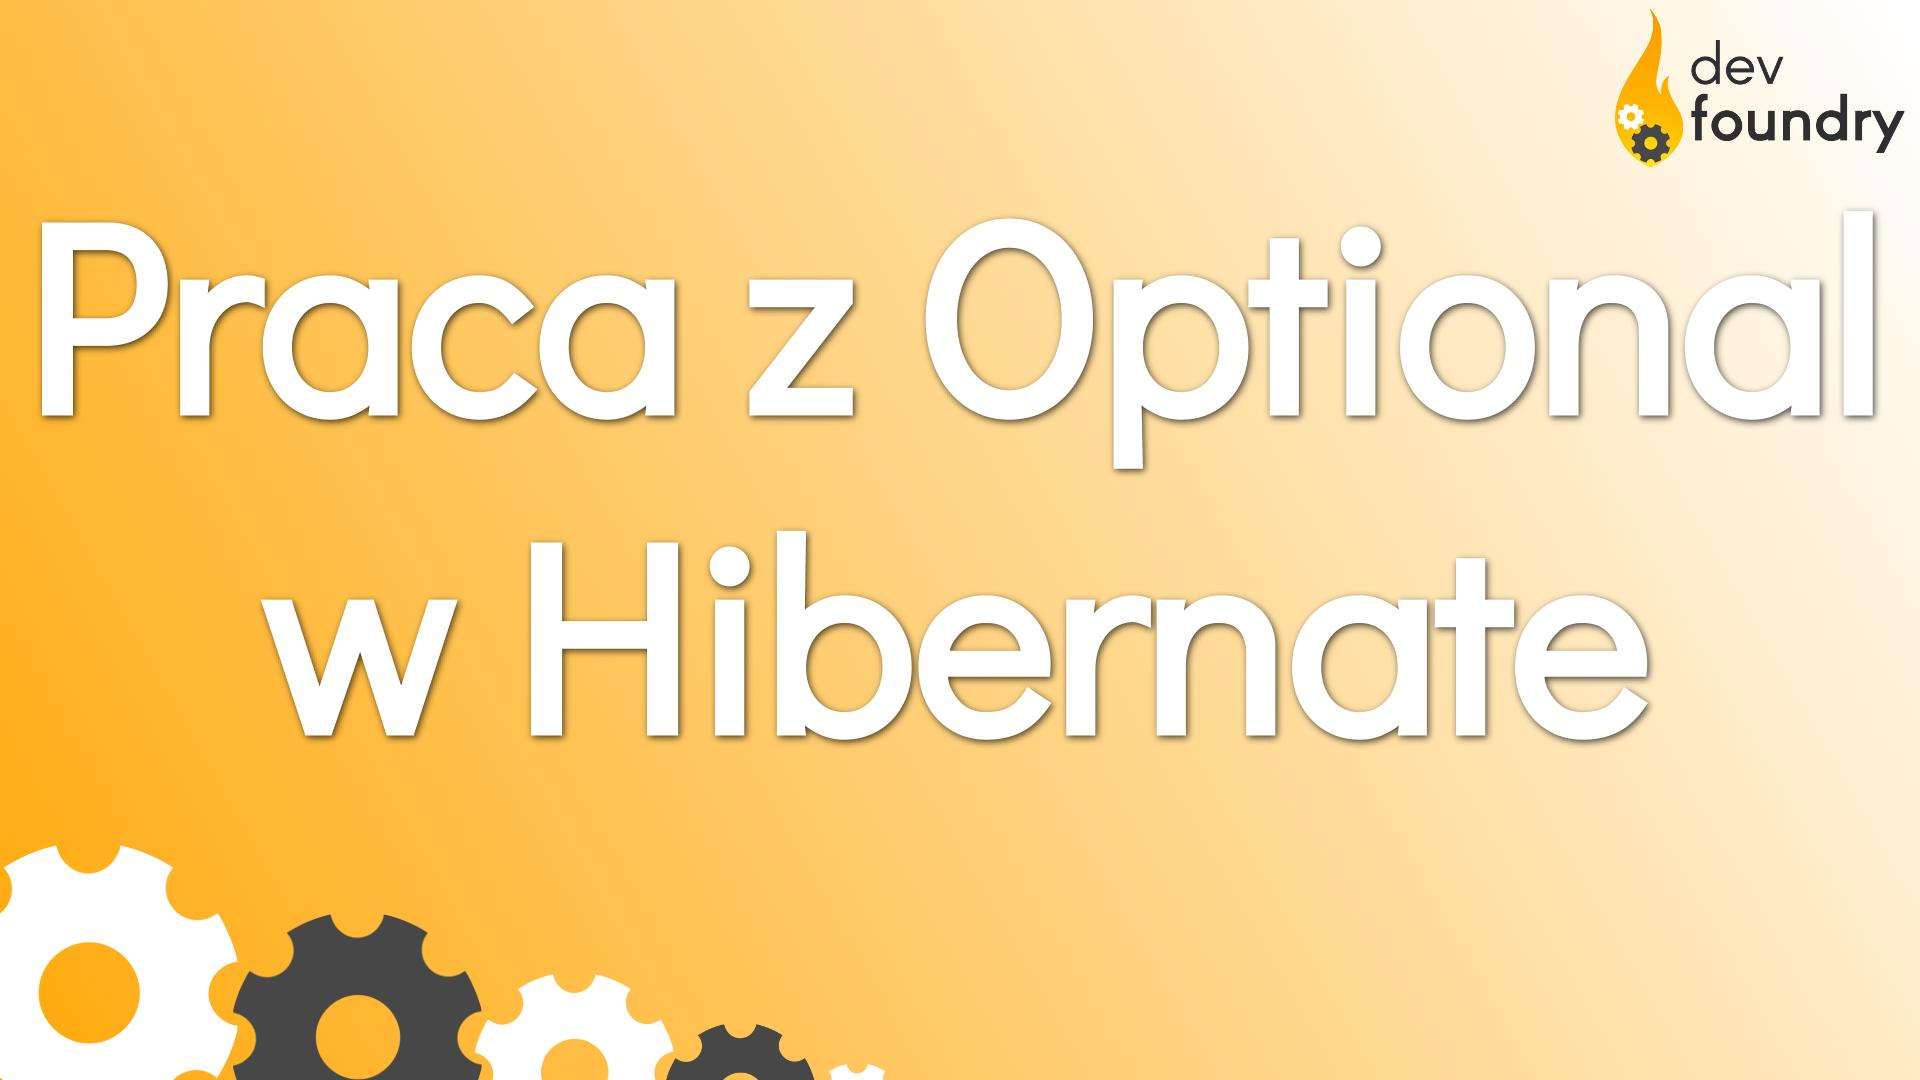 optional hibernate dev foundry blog programowanie java spring kursy